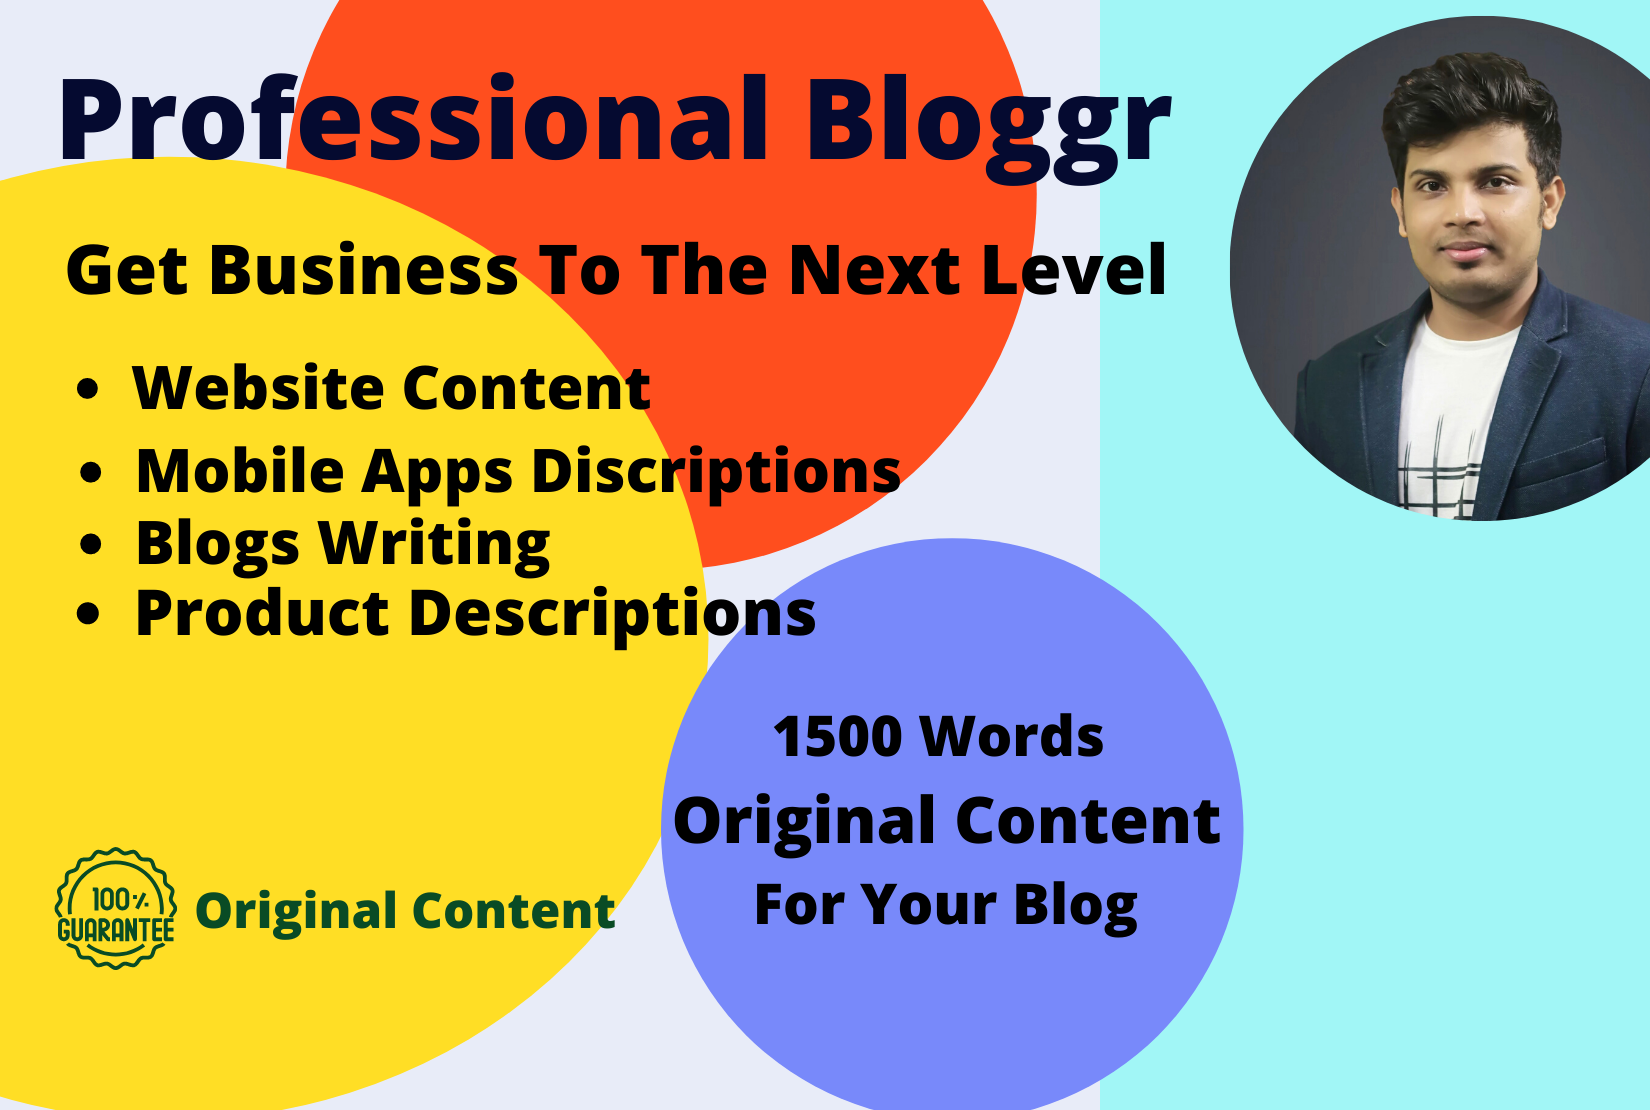 1500 word original content for your blog,  Website and Apps